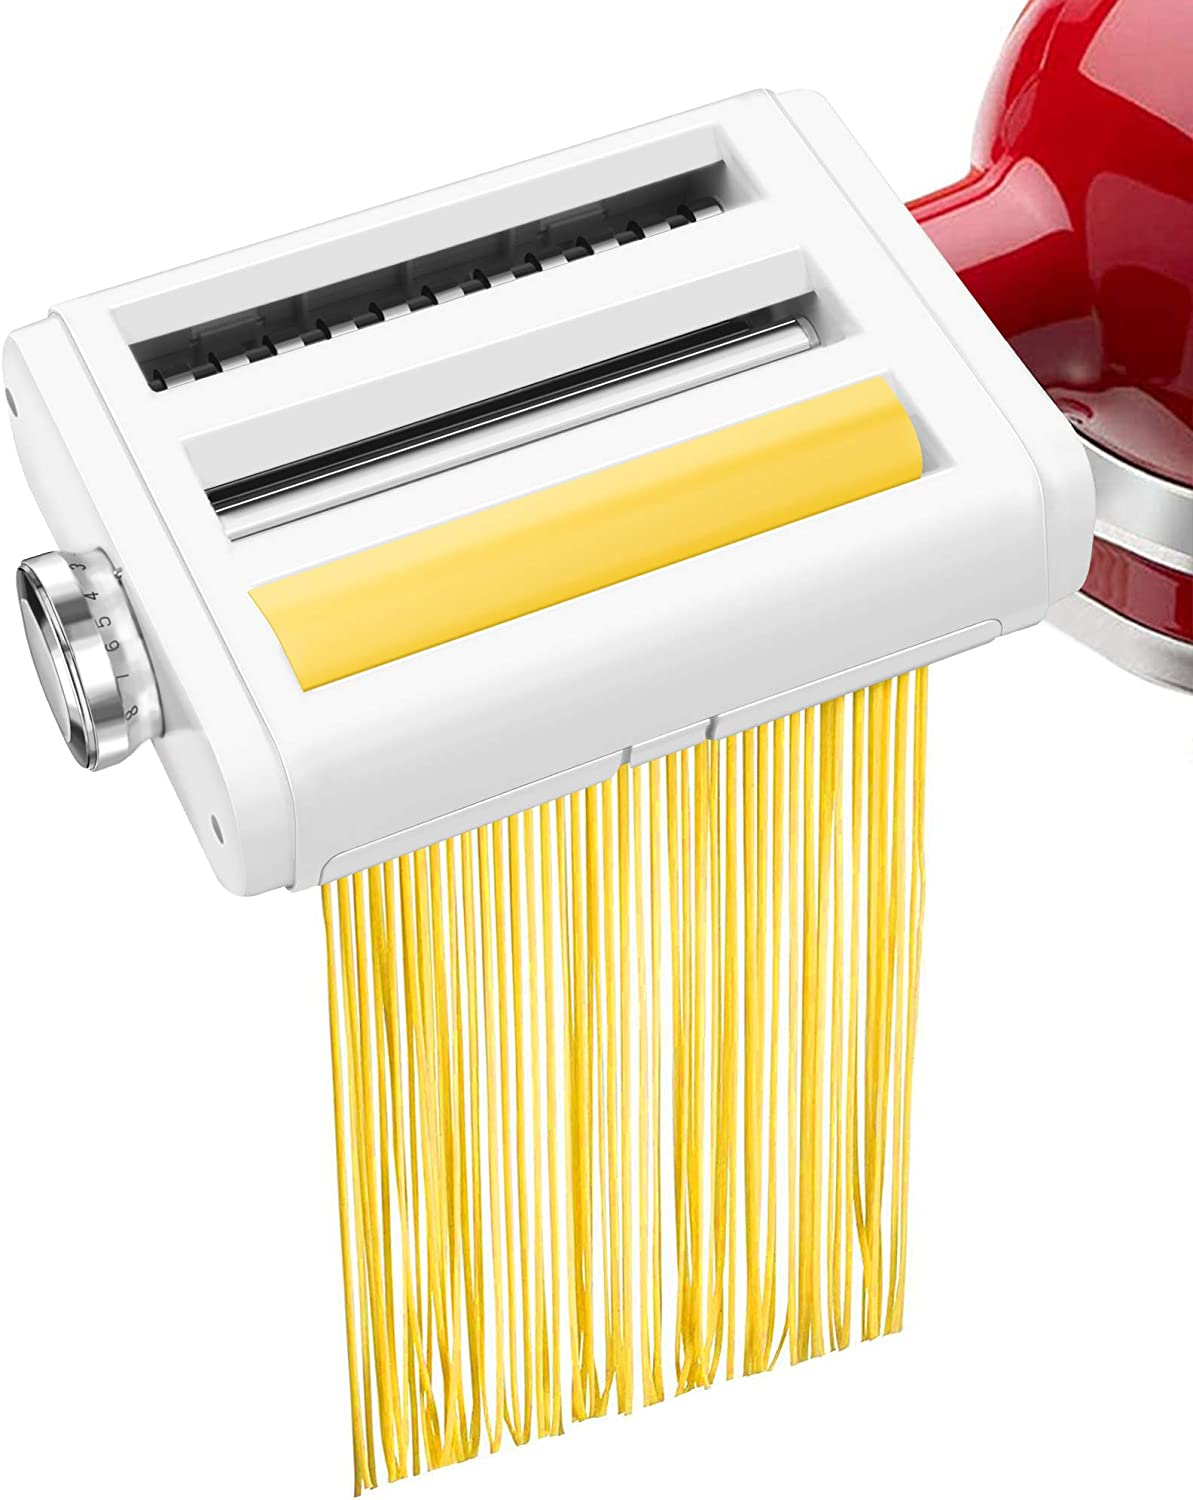 Pasta Maker Attachment for KitchenAid Stand Mixers 3 in 1 Set Includes Pasta Roller Spaghetti Cutter &Fettuccine Cutter, Durable Pasta Attachments for KitchenAid